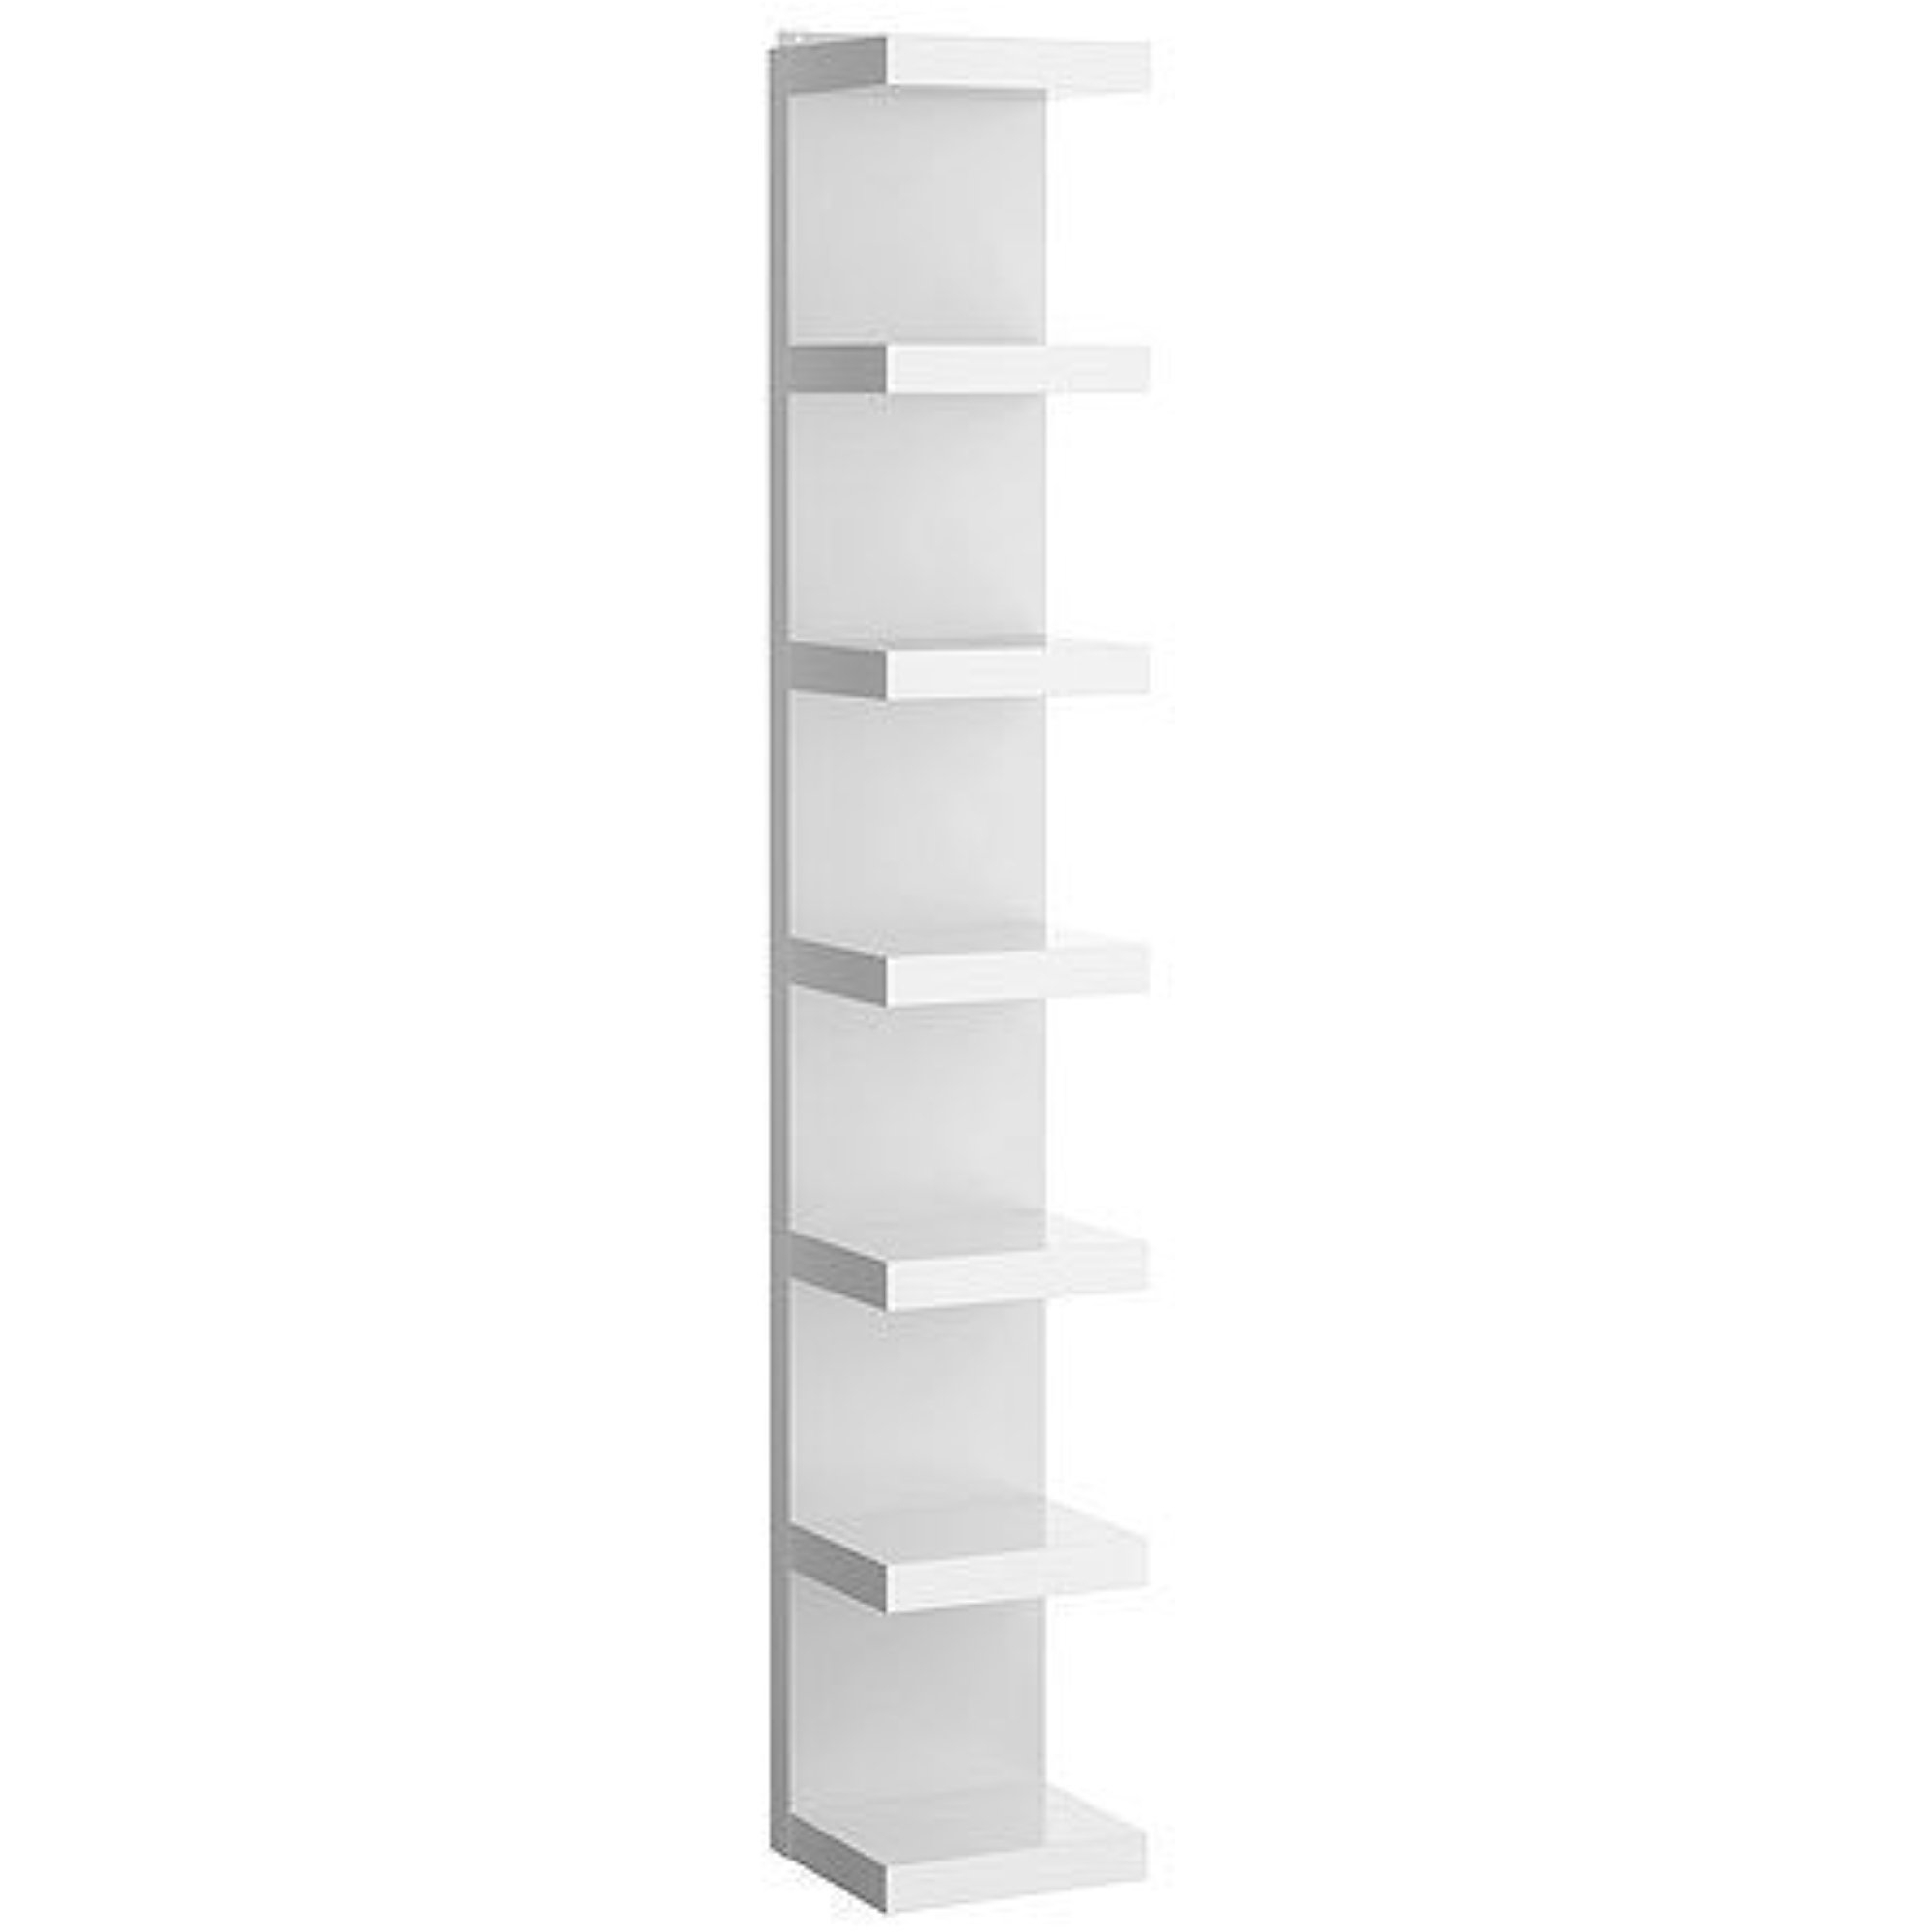 Widely Used White Shelving Units With Regard To White Shelving Units (View 15 of 15)